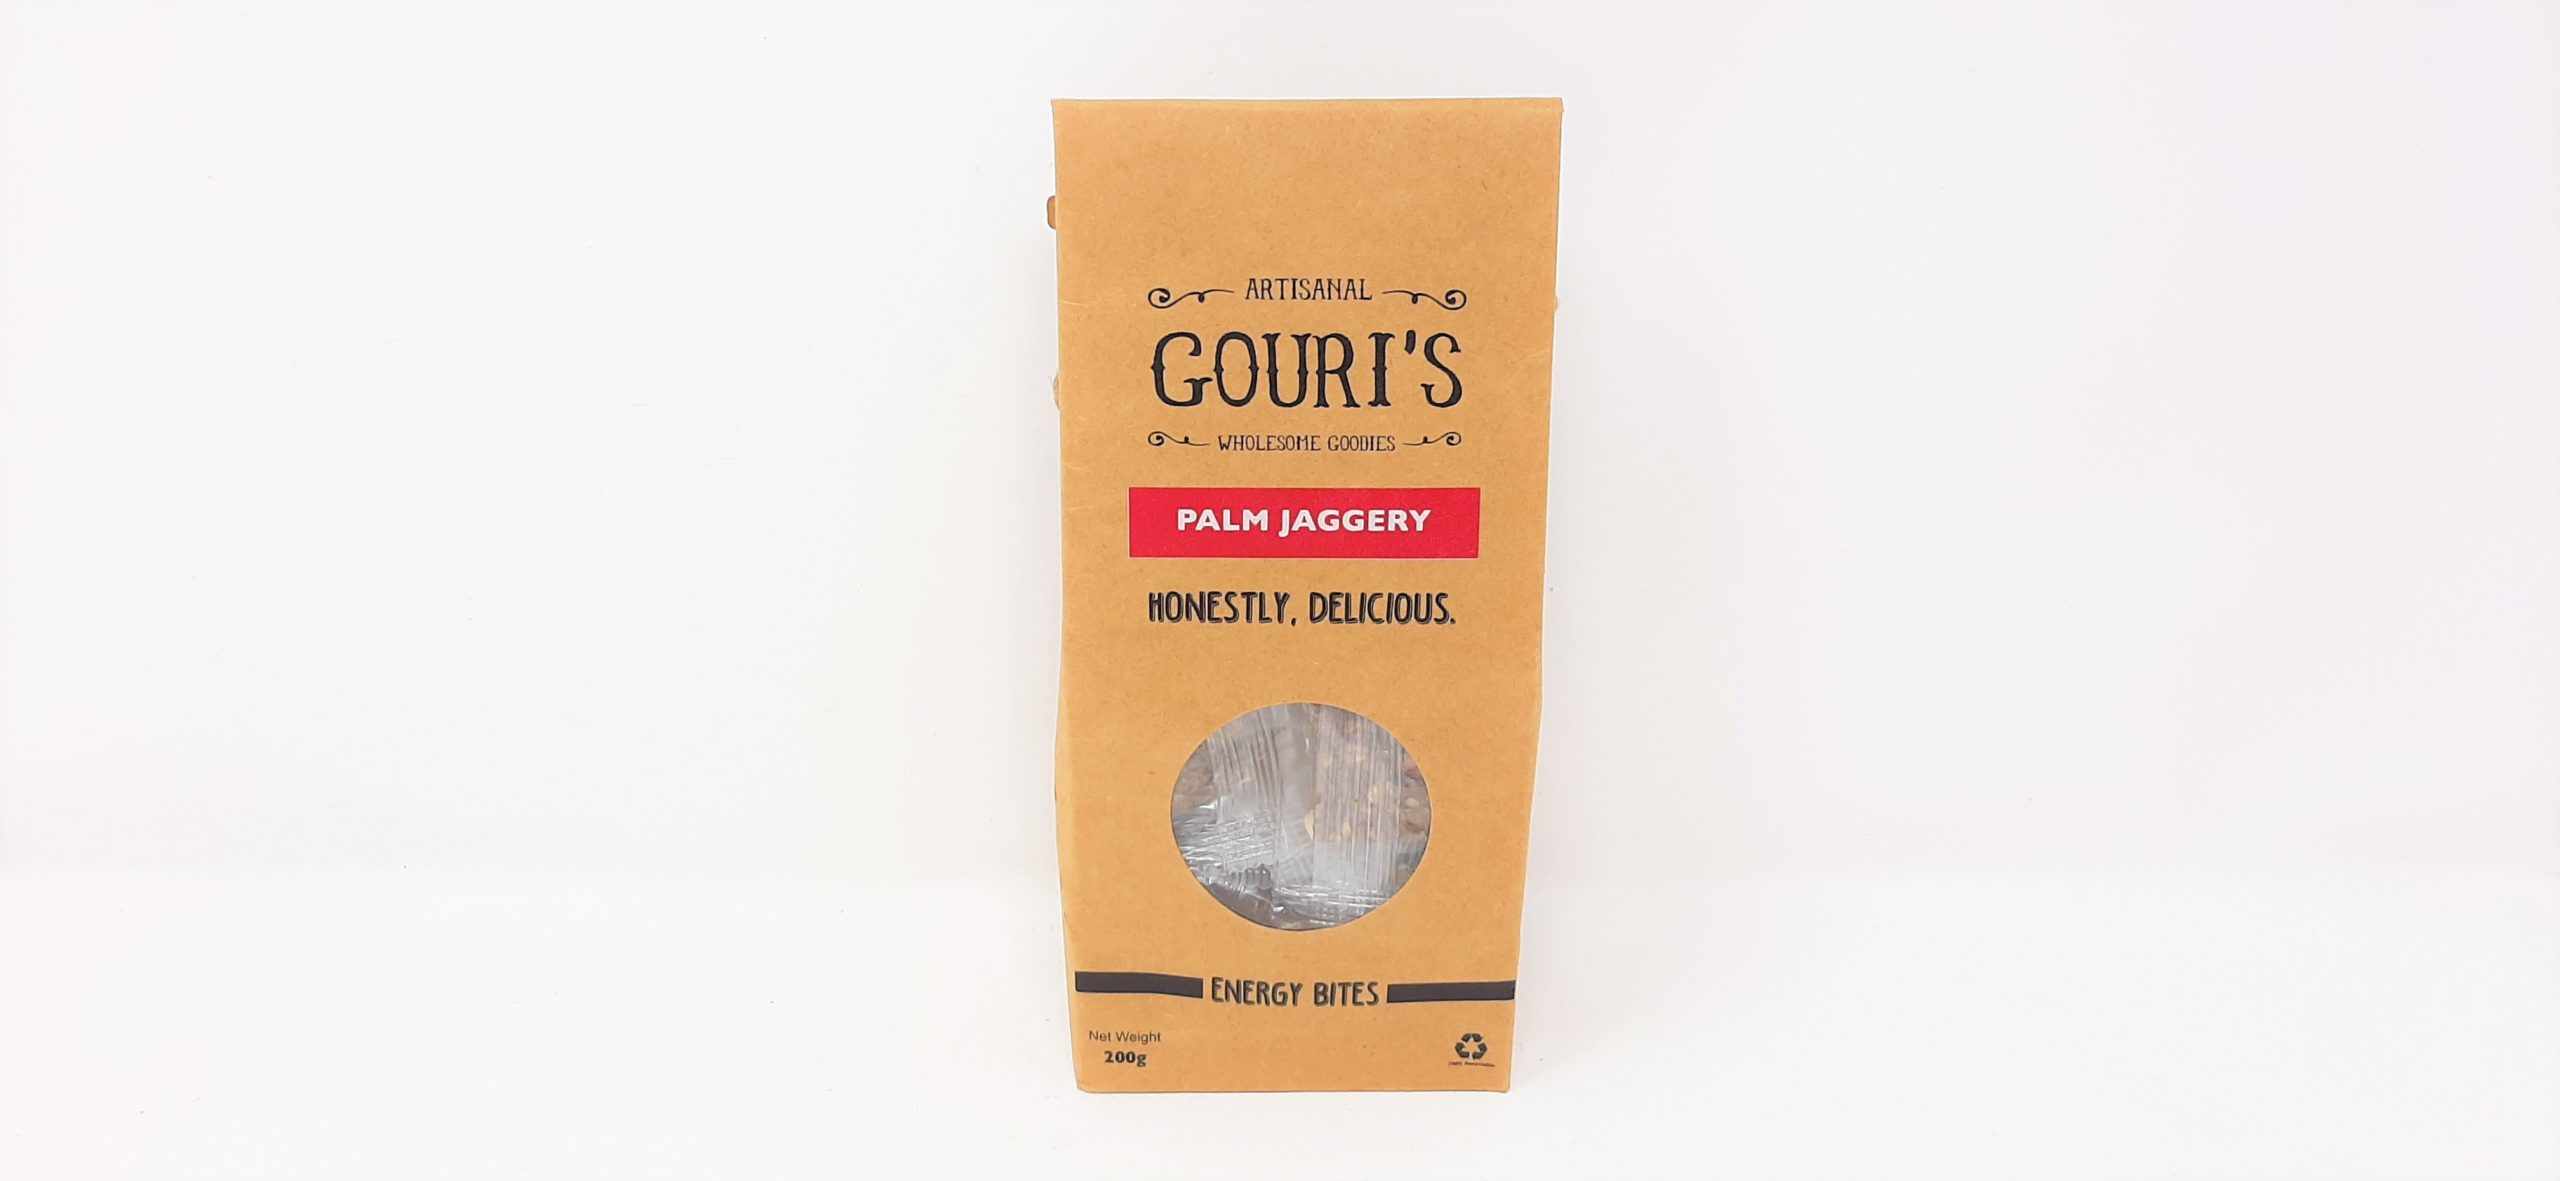 Gouri's Natural Energy Bars – Palm Jaggery & Honey: #FirstImpressions